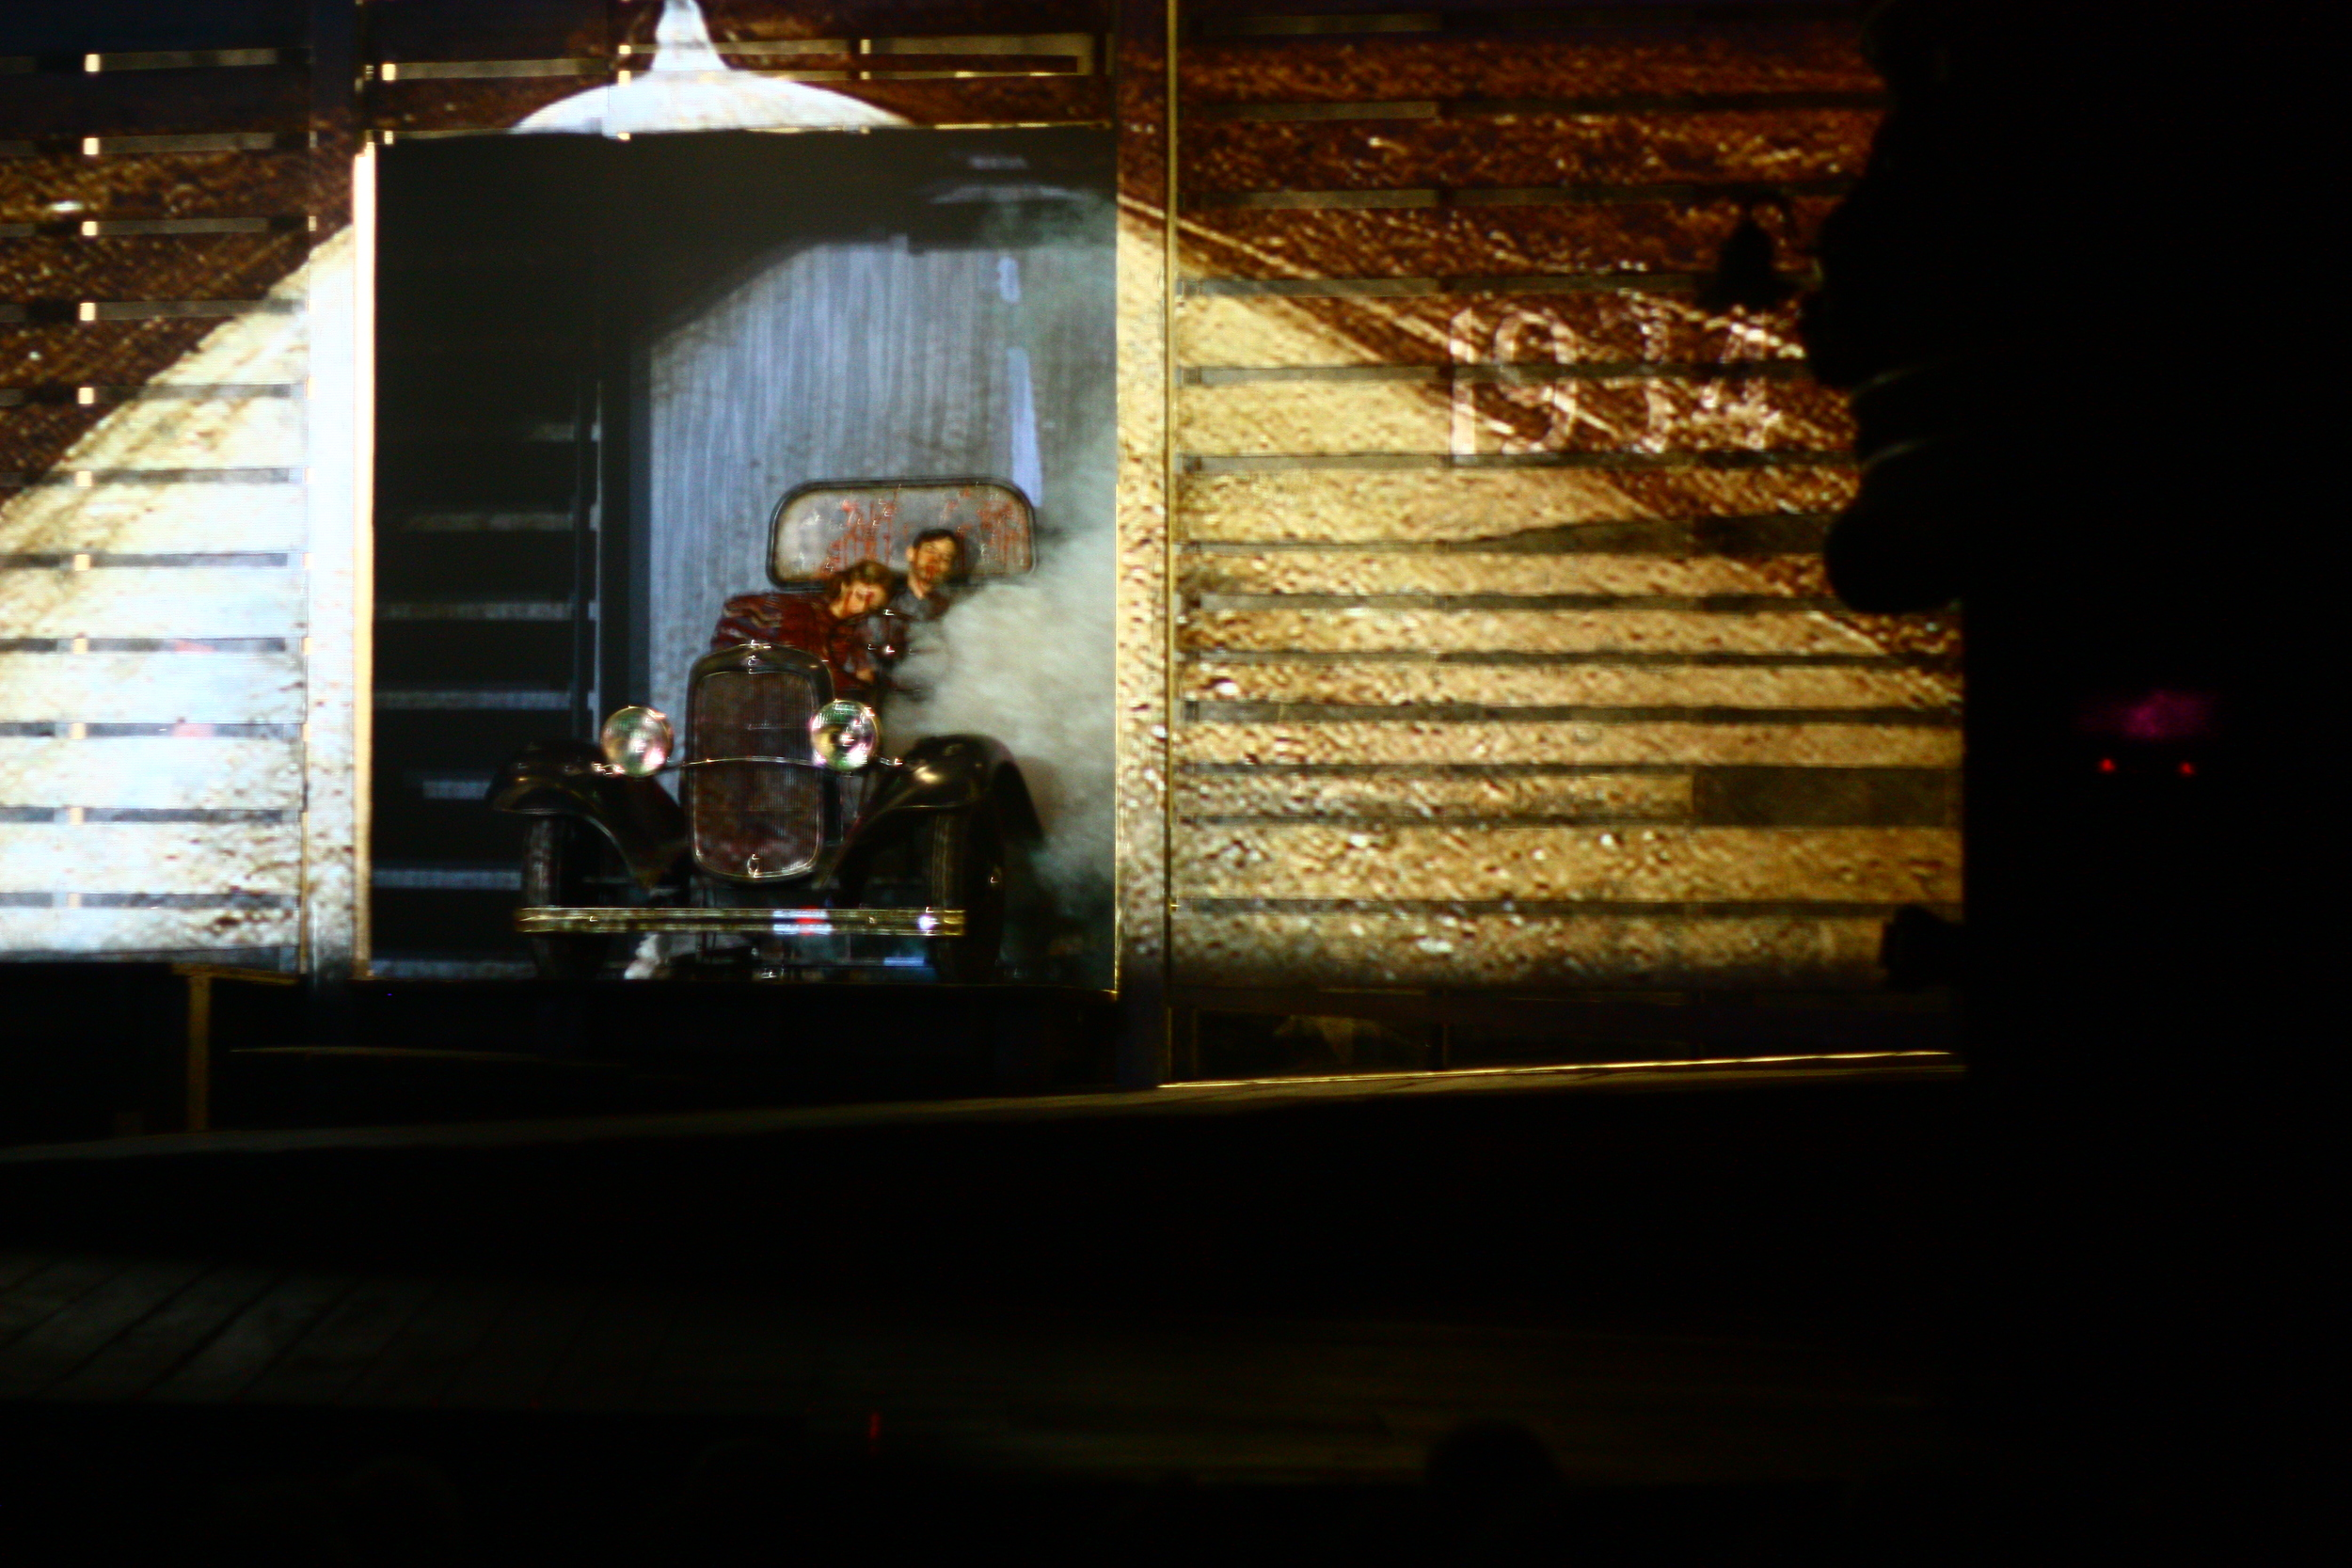 Photos from Bonnie & Clyde (1 of 3)